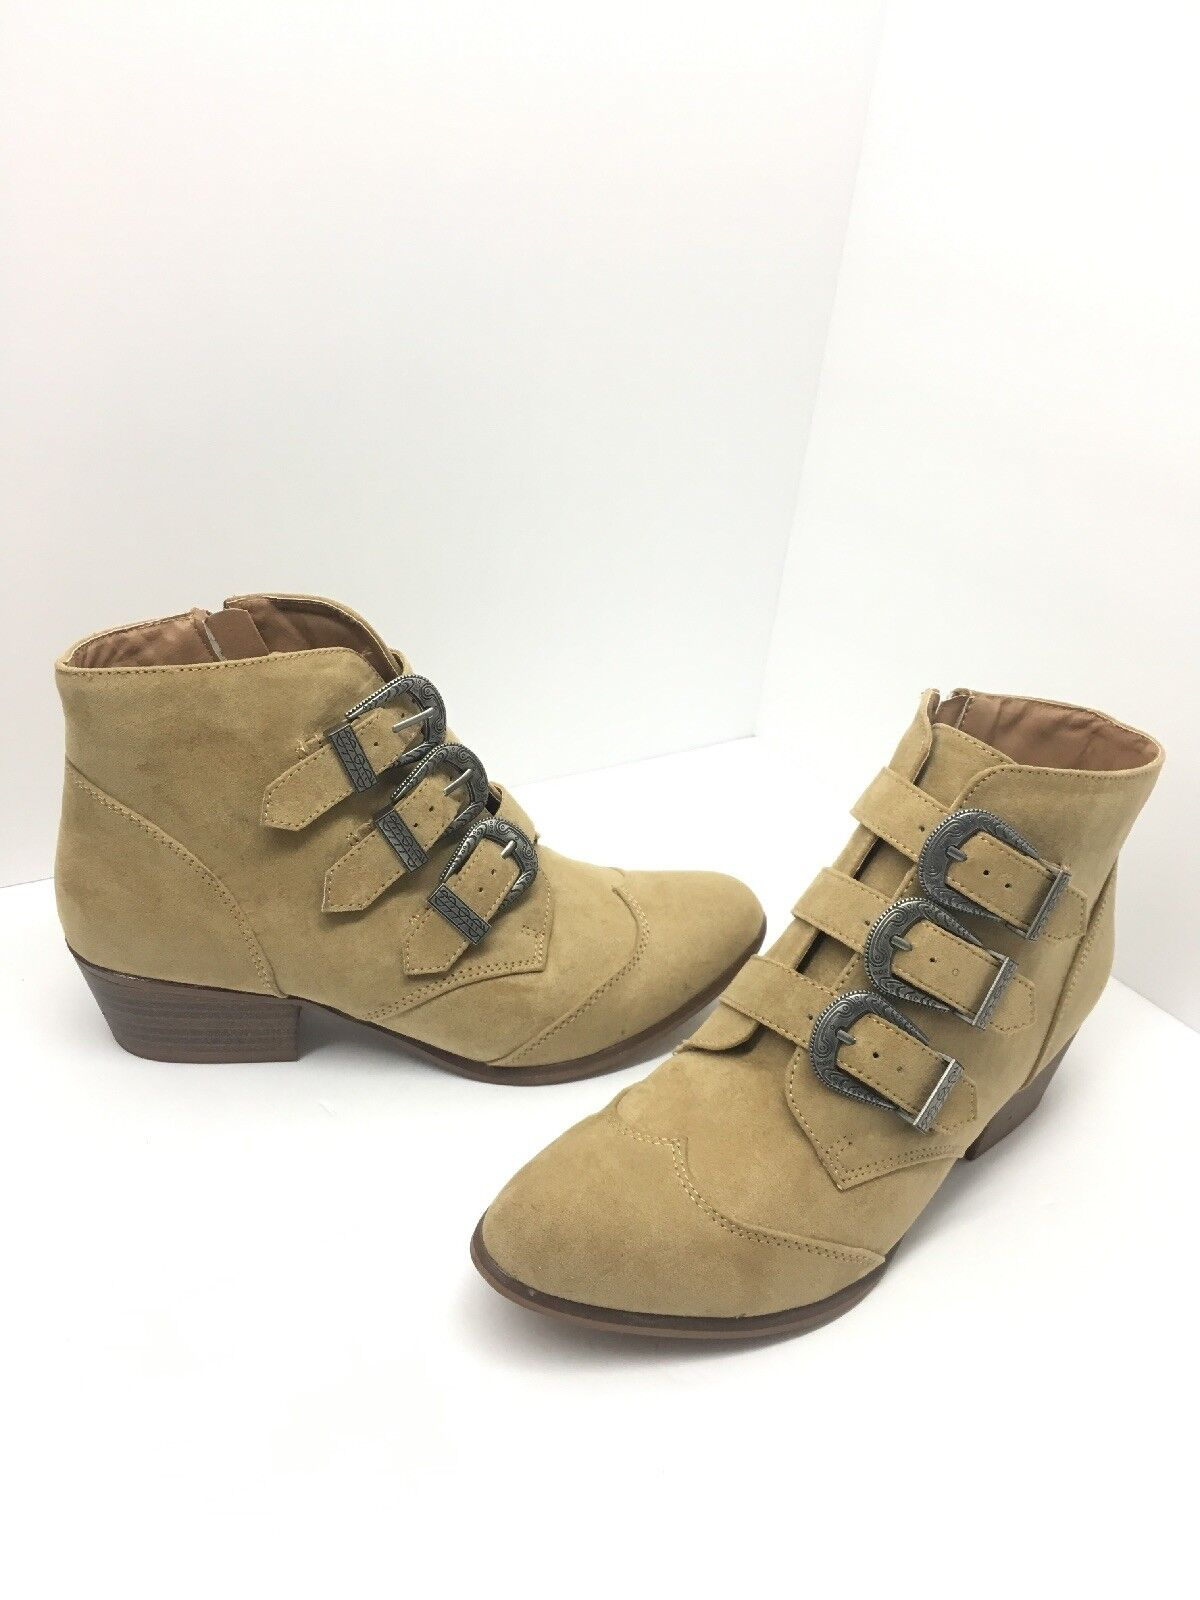 3816196a16f0f SO Stage Ankle Boots Zipper Closure Almond Toe Tan Size 7 M NWOB ...